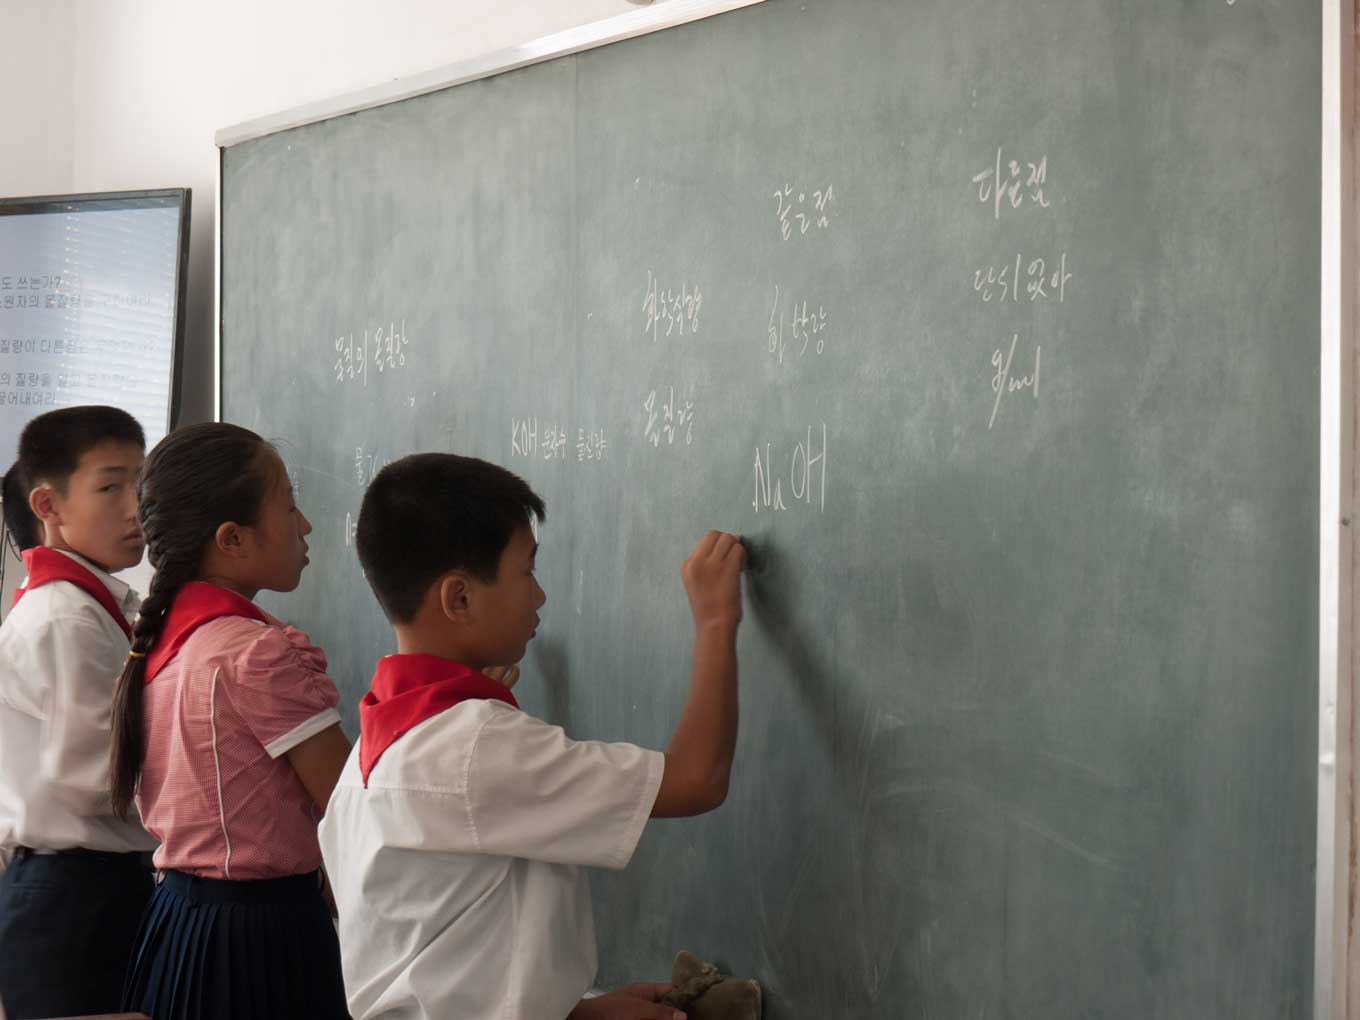 Two boys and one girl stand at blackboard in their school uniforms